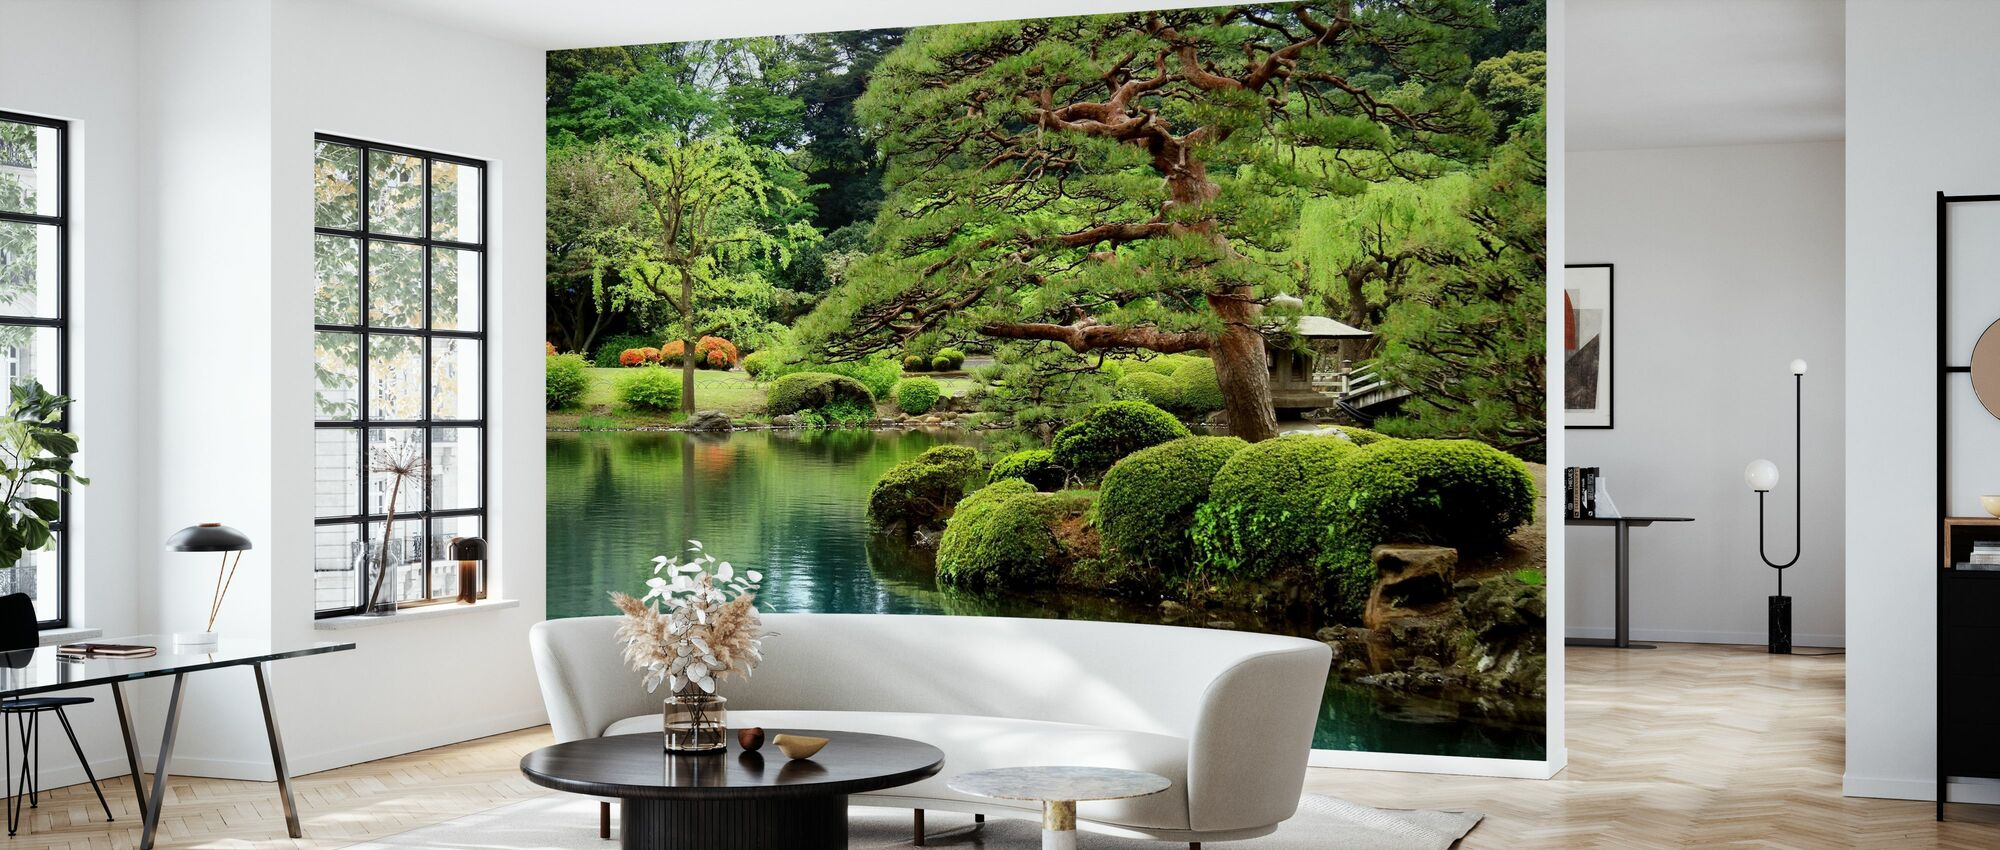 Calm Zen Lake and Bonsai Trees in Tokyo Garden - Wallpaper - Living Room